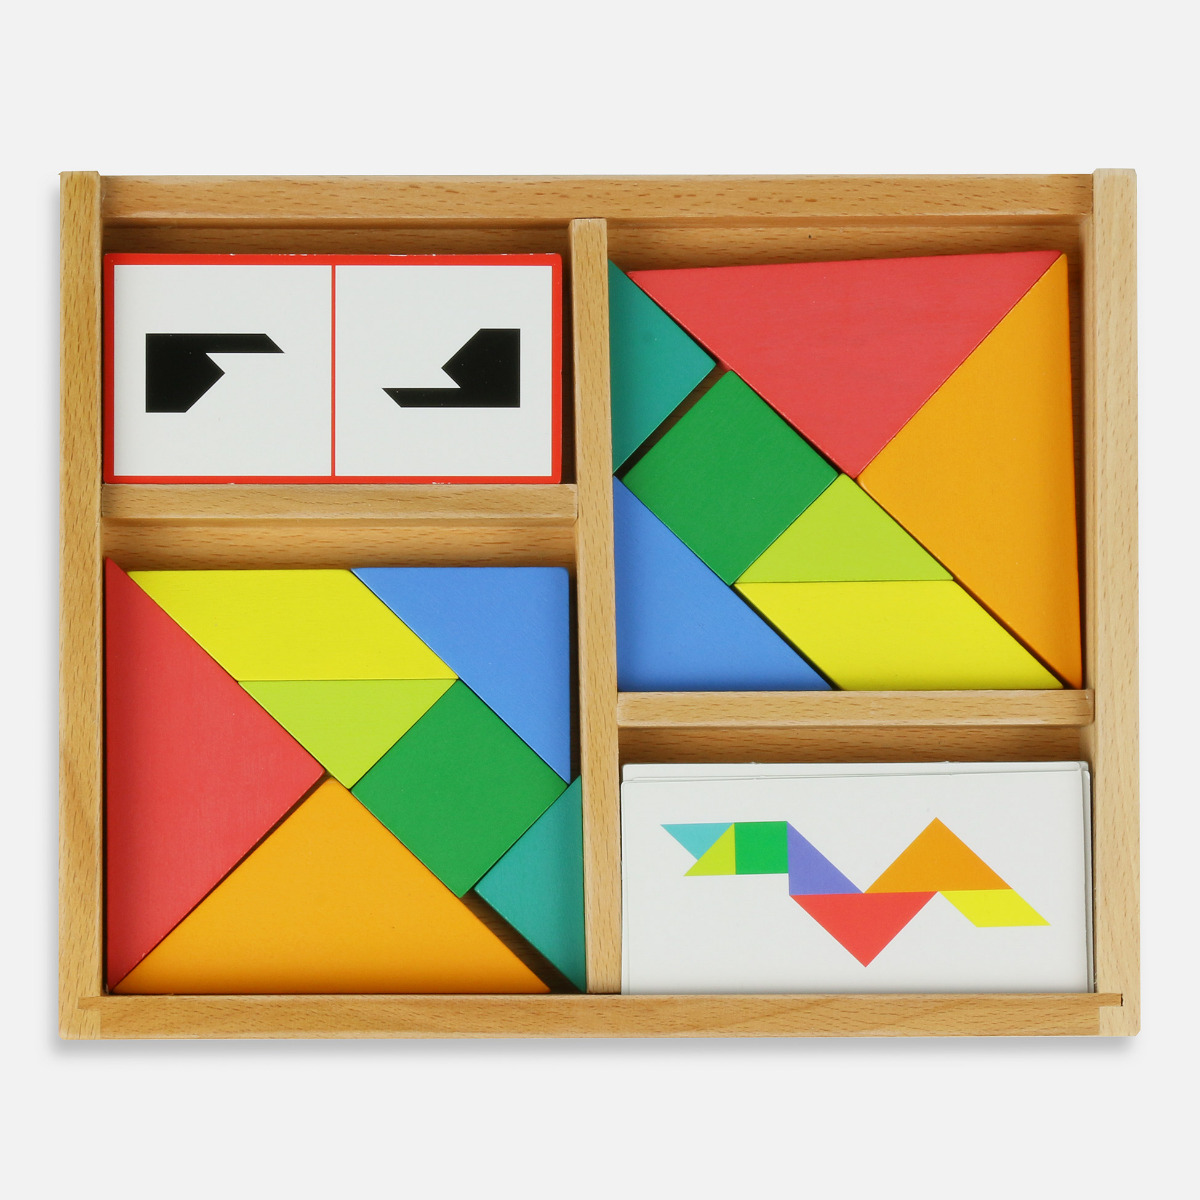 TANGRAM BATTLE